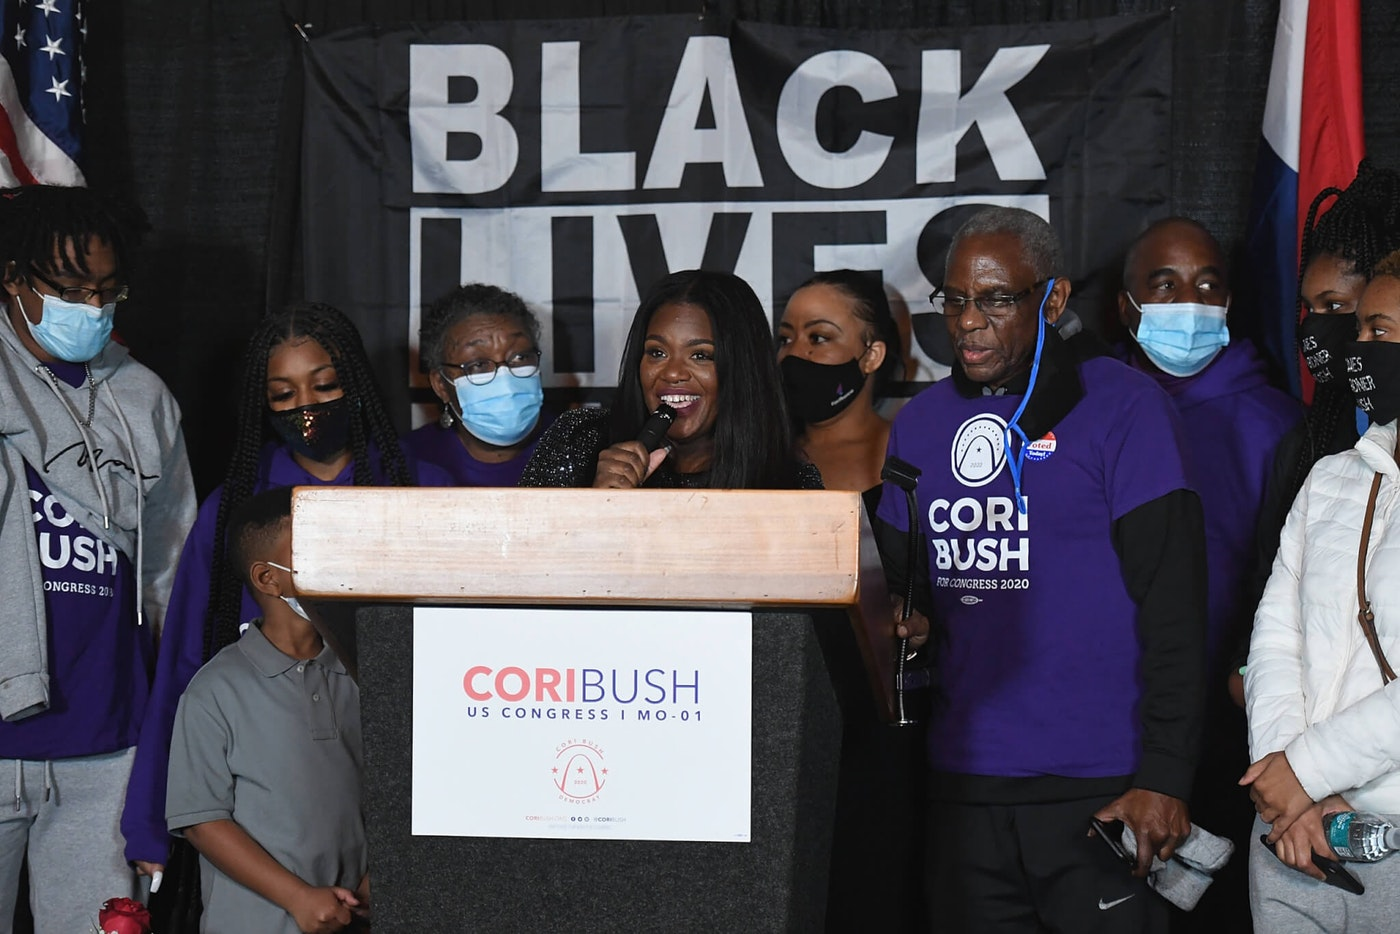 Congresswoman-elect Cori Bush speaks during her election-night watch party on November 3, 2020 at campaign headquarters in St. Louis, Missouri. (Photo by Michael B. Thomas/Getty Images)